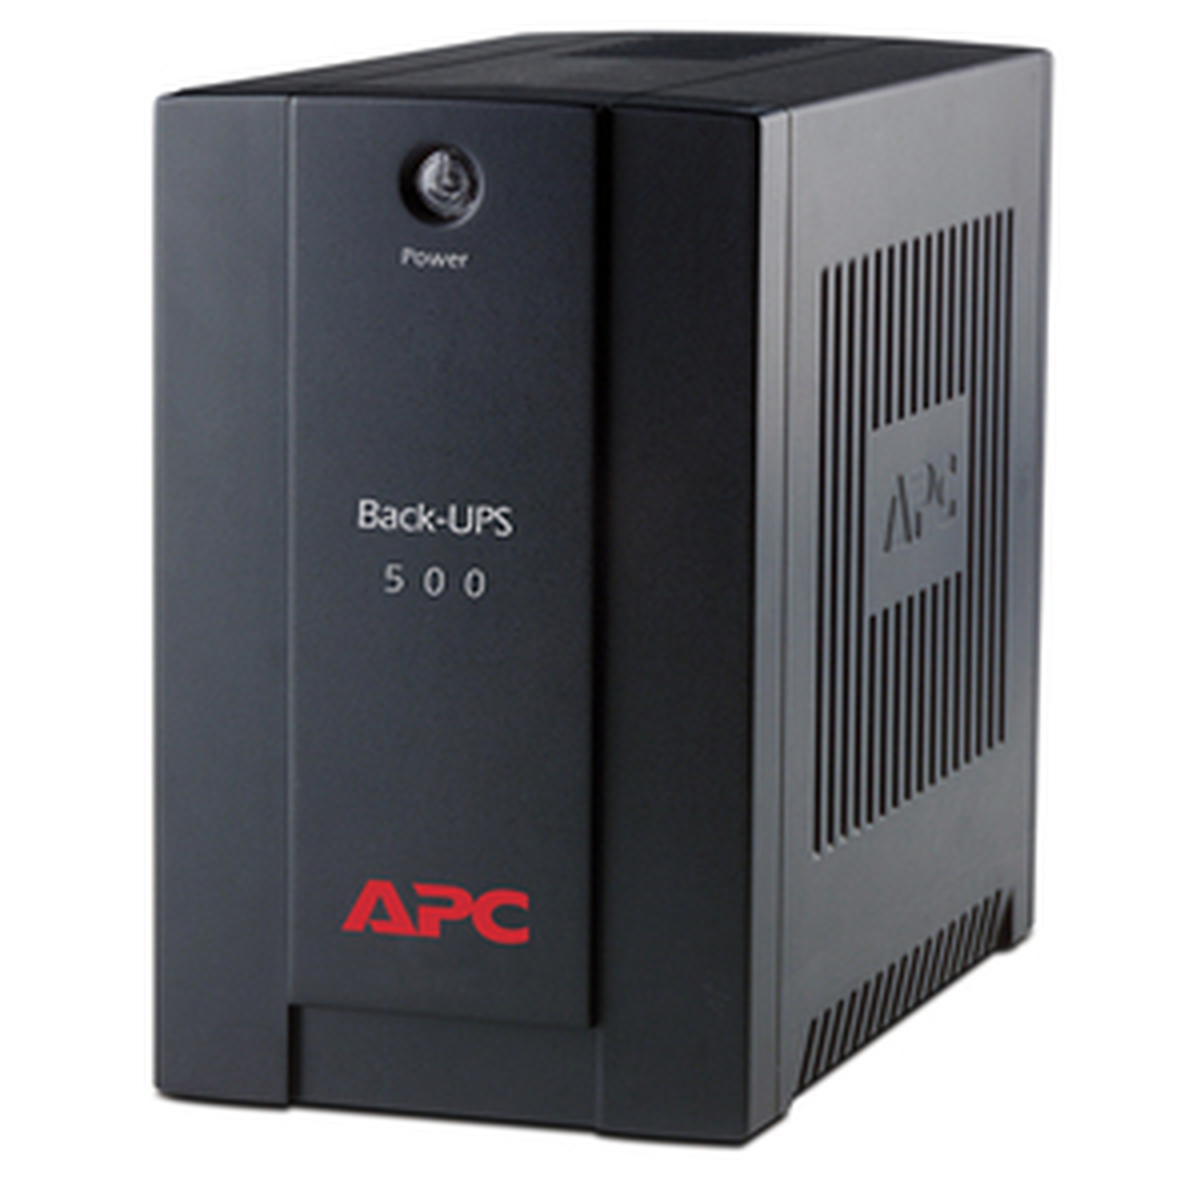 APC Back-UPS 500VA,AVR, IEC outlets, EU Medium